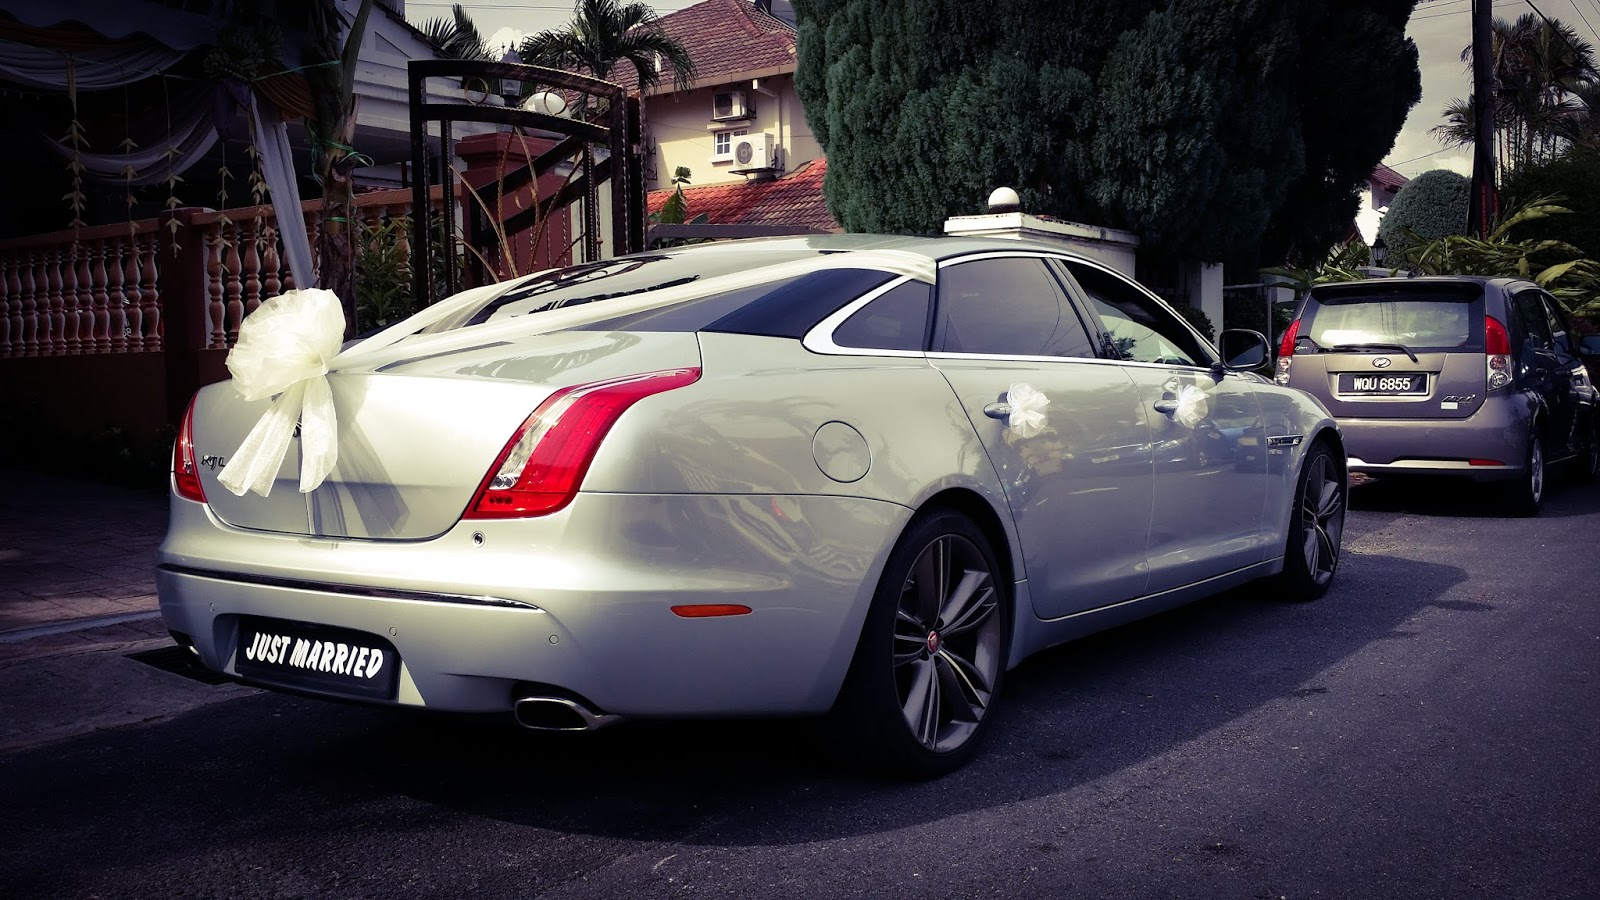 Jaguar XJL (Silver) RM 3000 Per Day With Chauffeur. RM 2000 Half Day